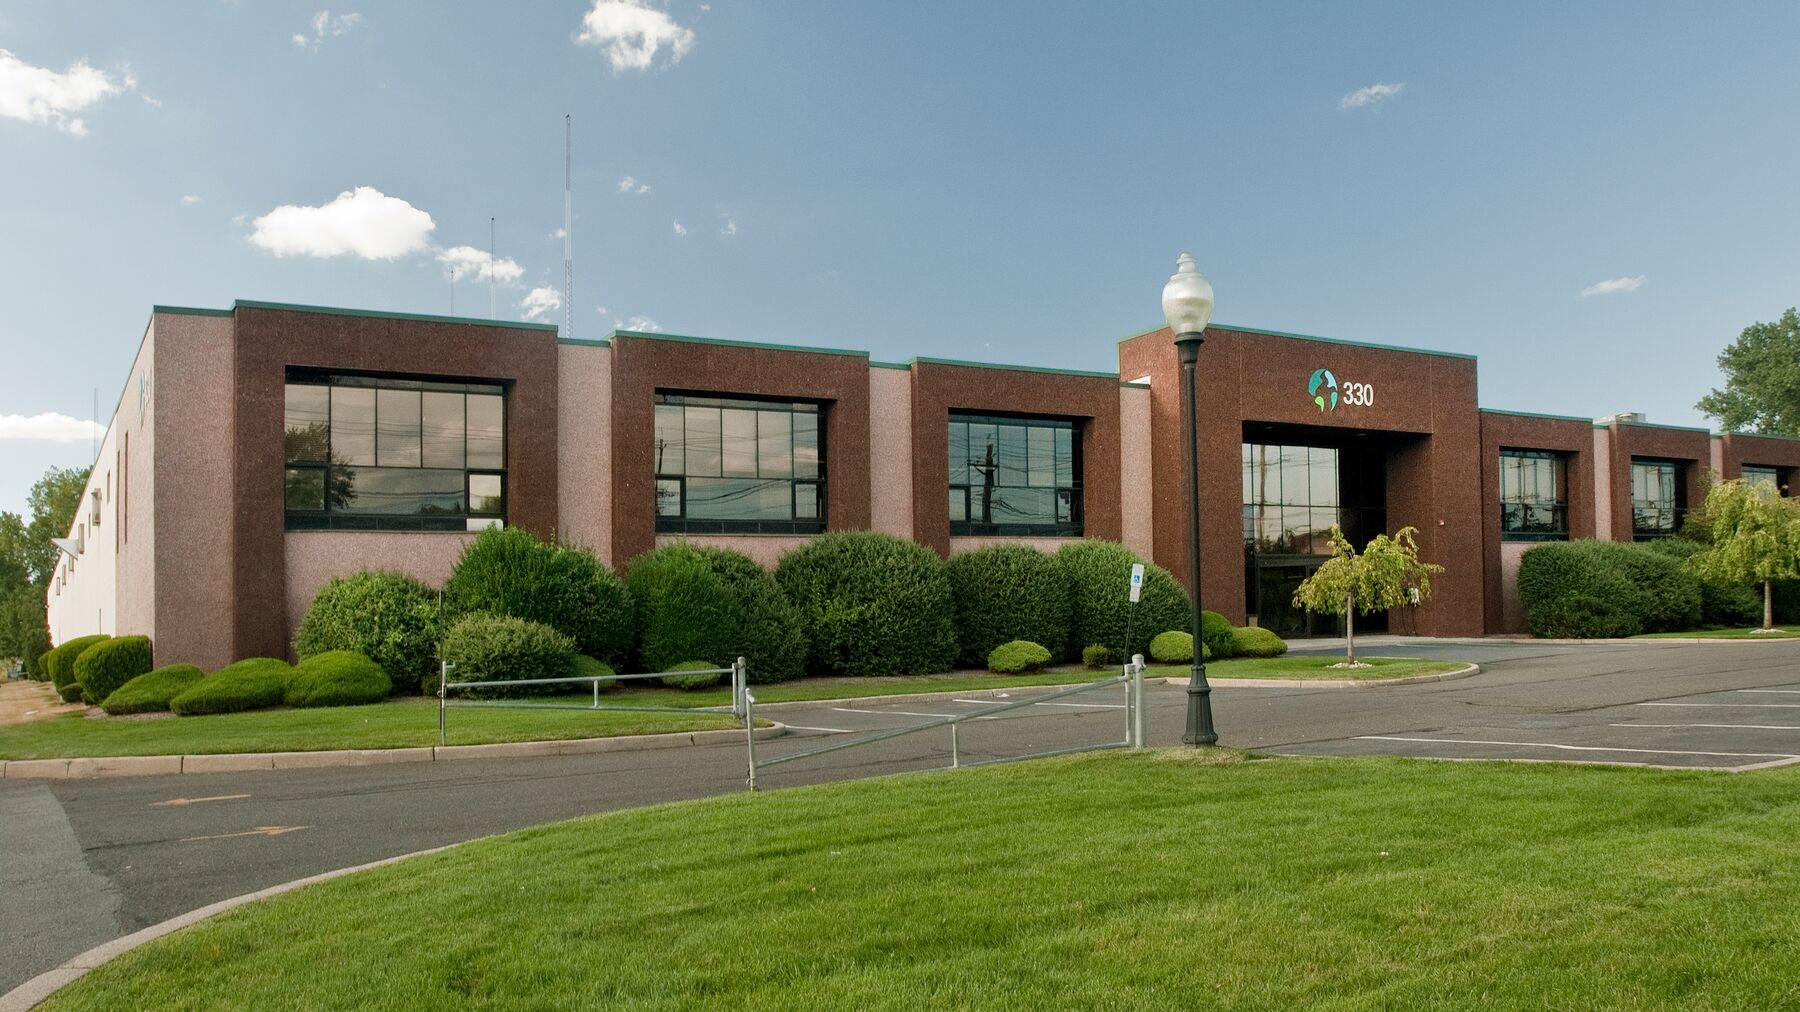 DPM-Prologis-Meadowlands_330-Washington-Avenue.jpg